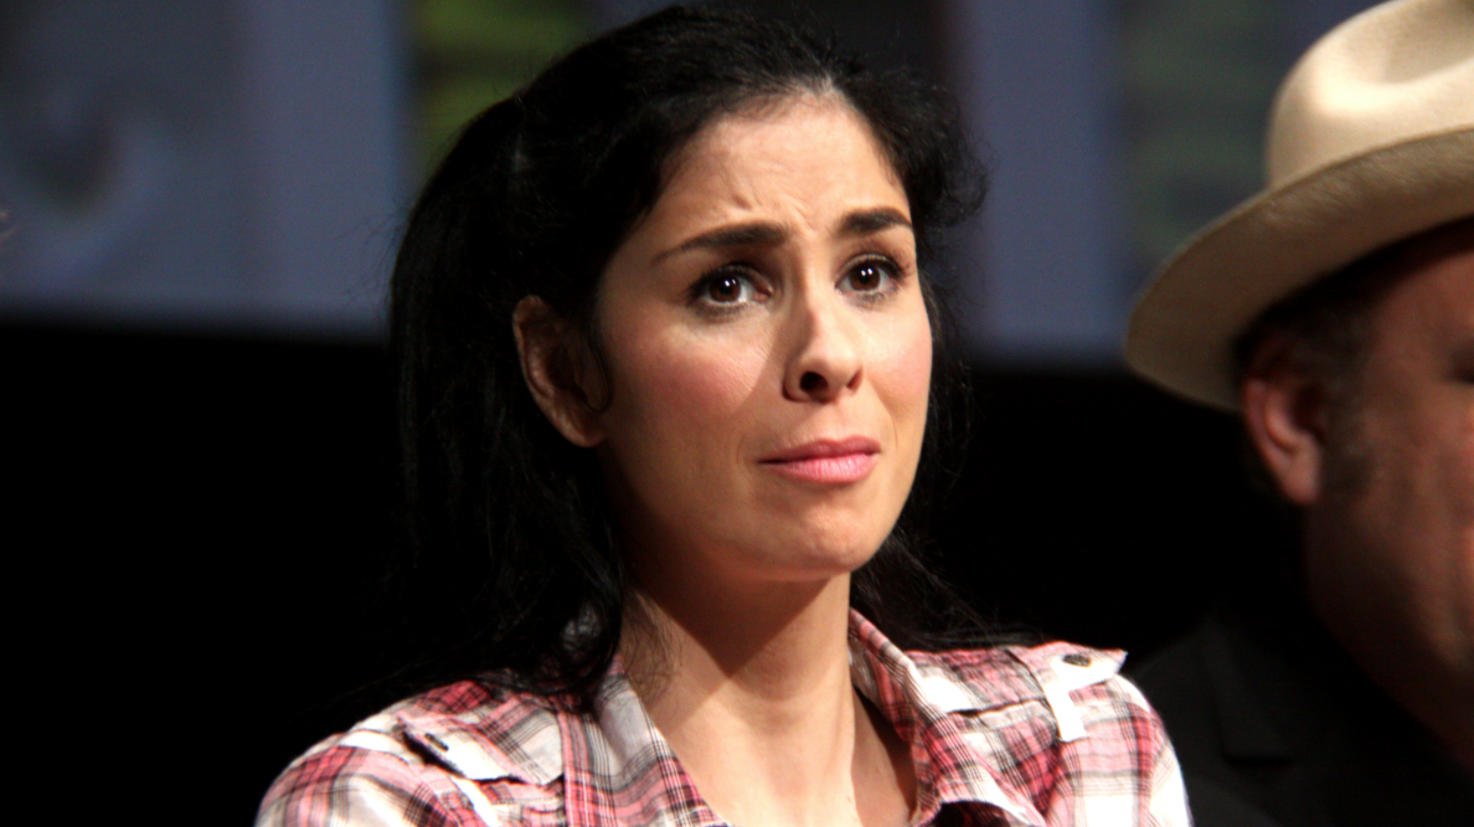 Comedian Sarah Silverman Calls For Military Coup Against Trump Featured